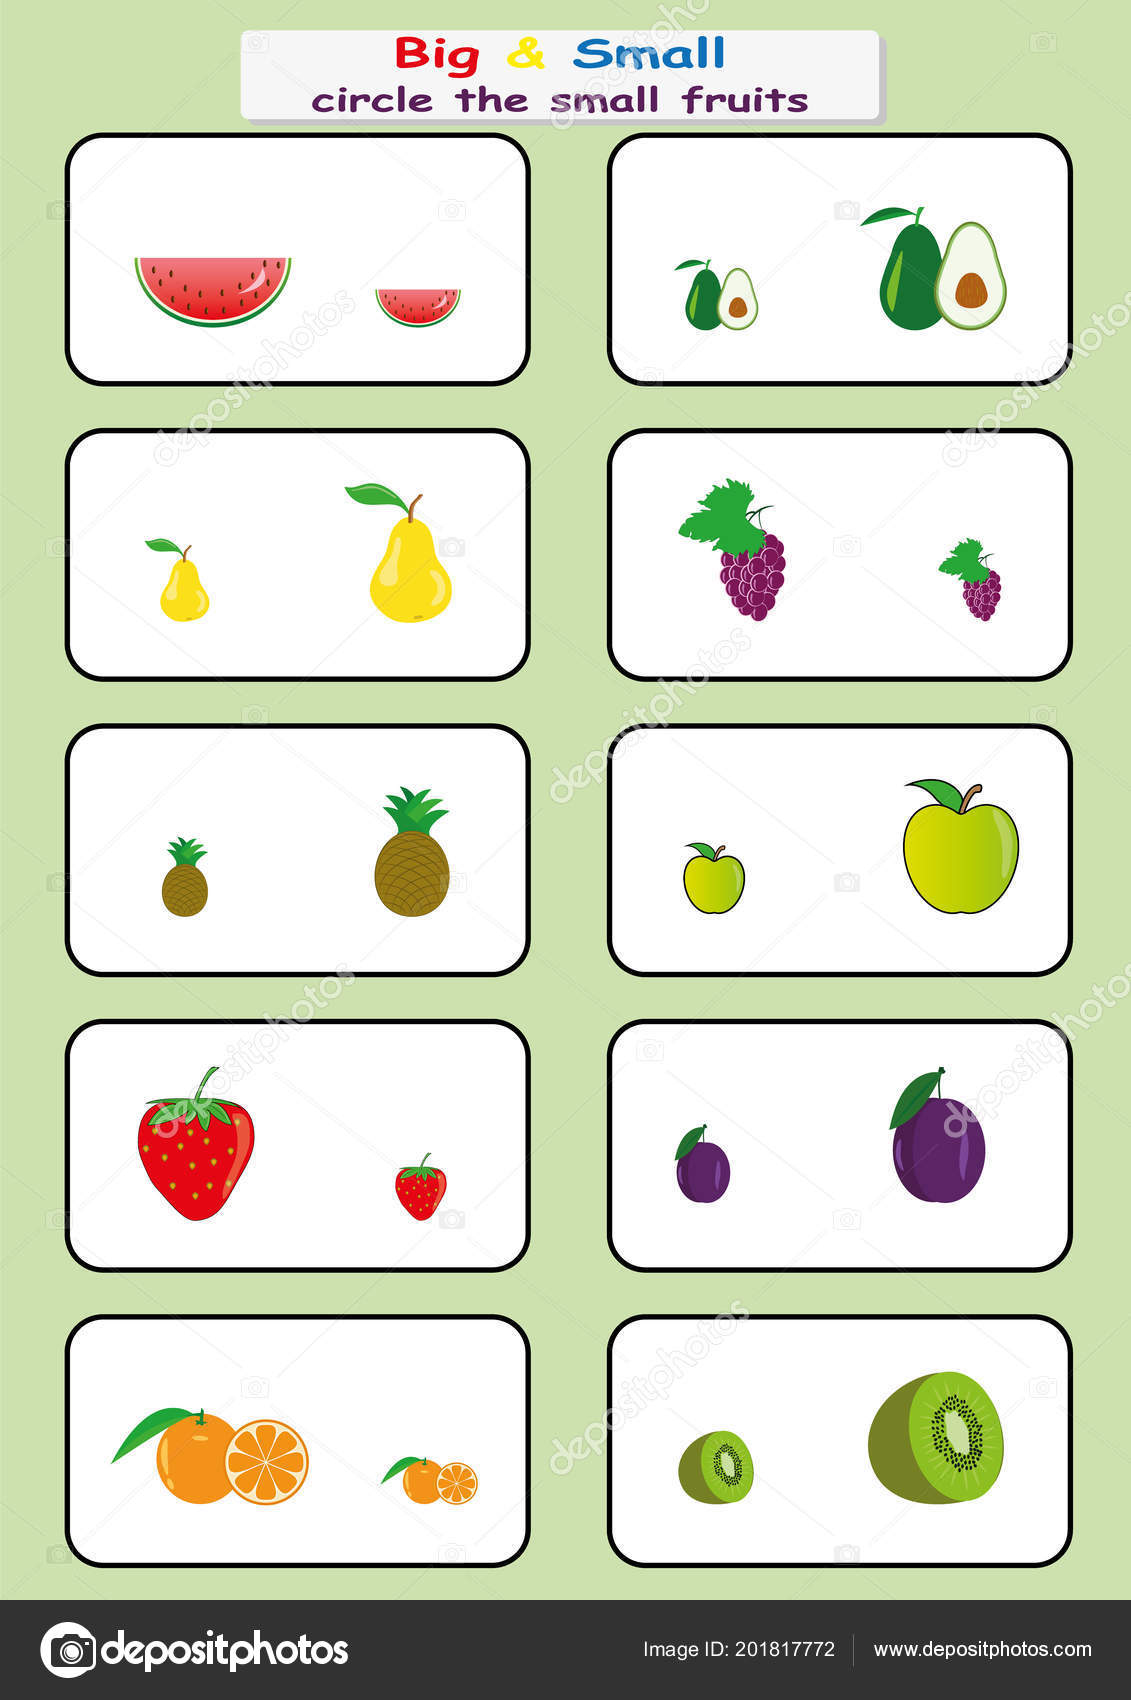 011480aead56 Circle the small fruits, Find Big or Small worksheet for kids ...